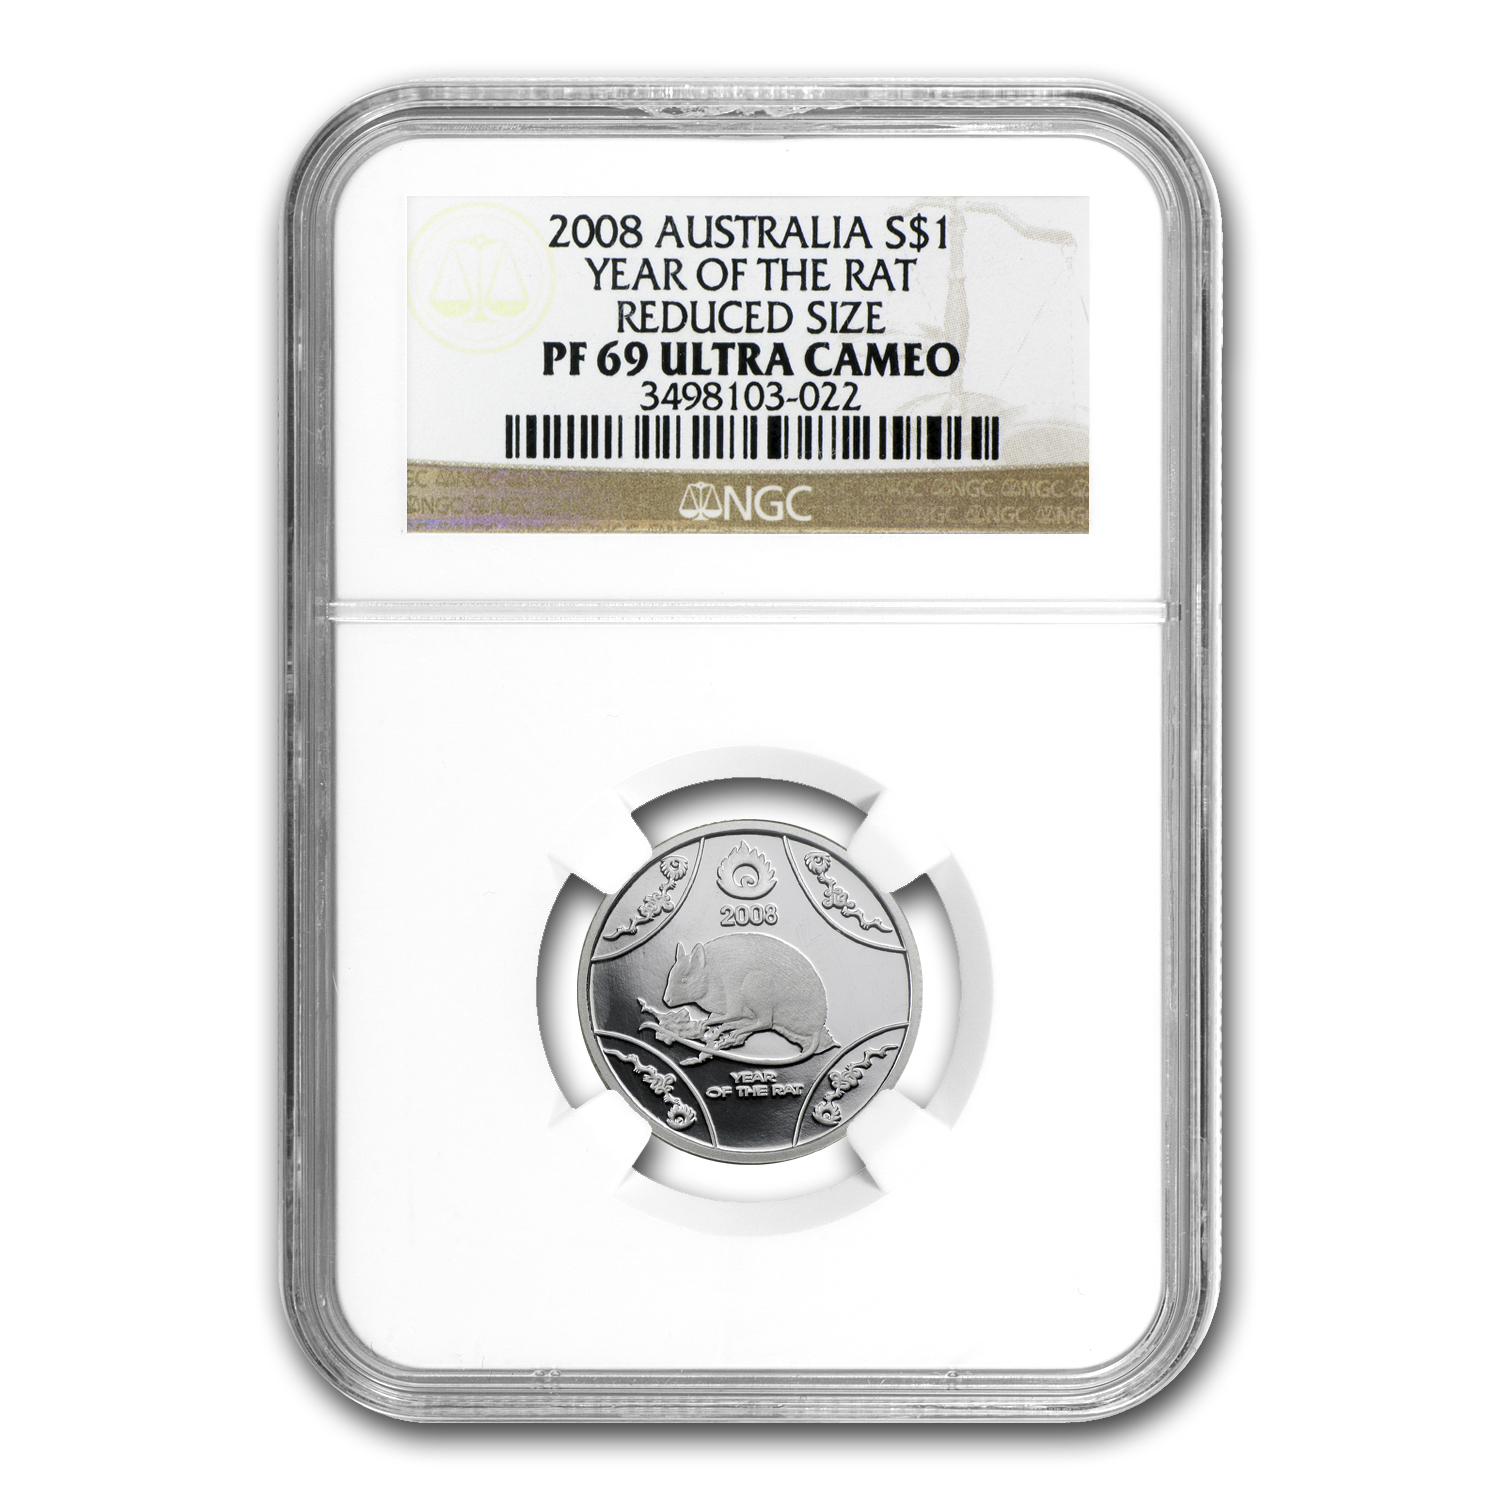 2008 Australia Silver Year of the Rat PF-69 NGC